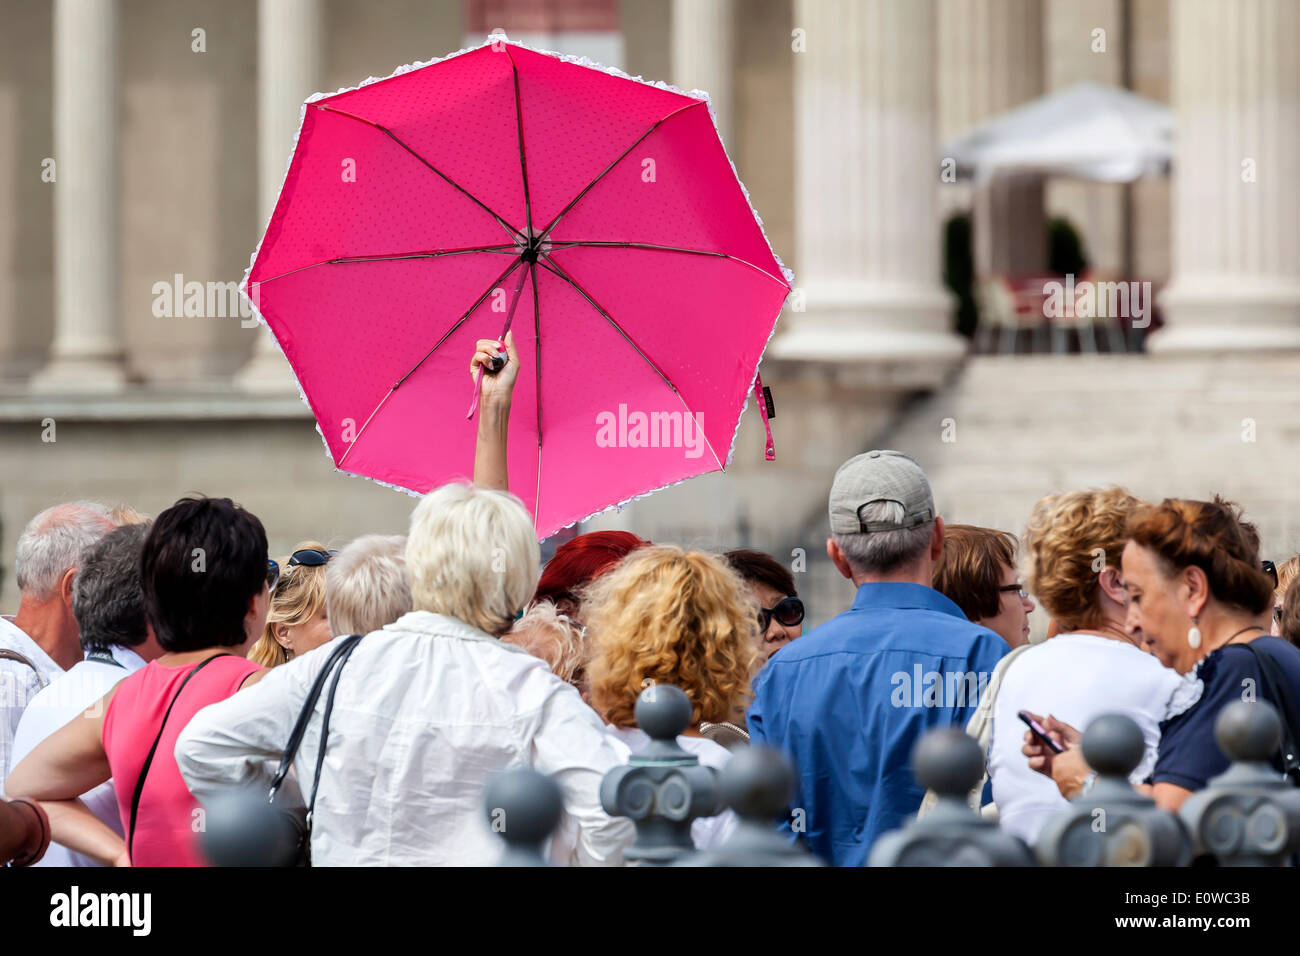 Group of tourists with a tour guide holding a pink umbrella, Budapest, Hungary - Stock Image